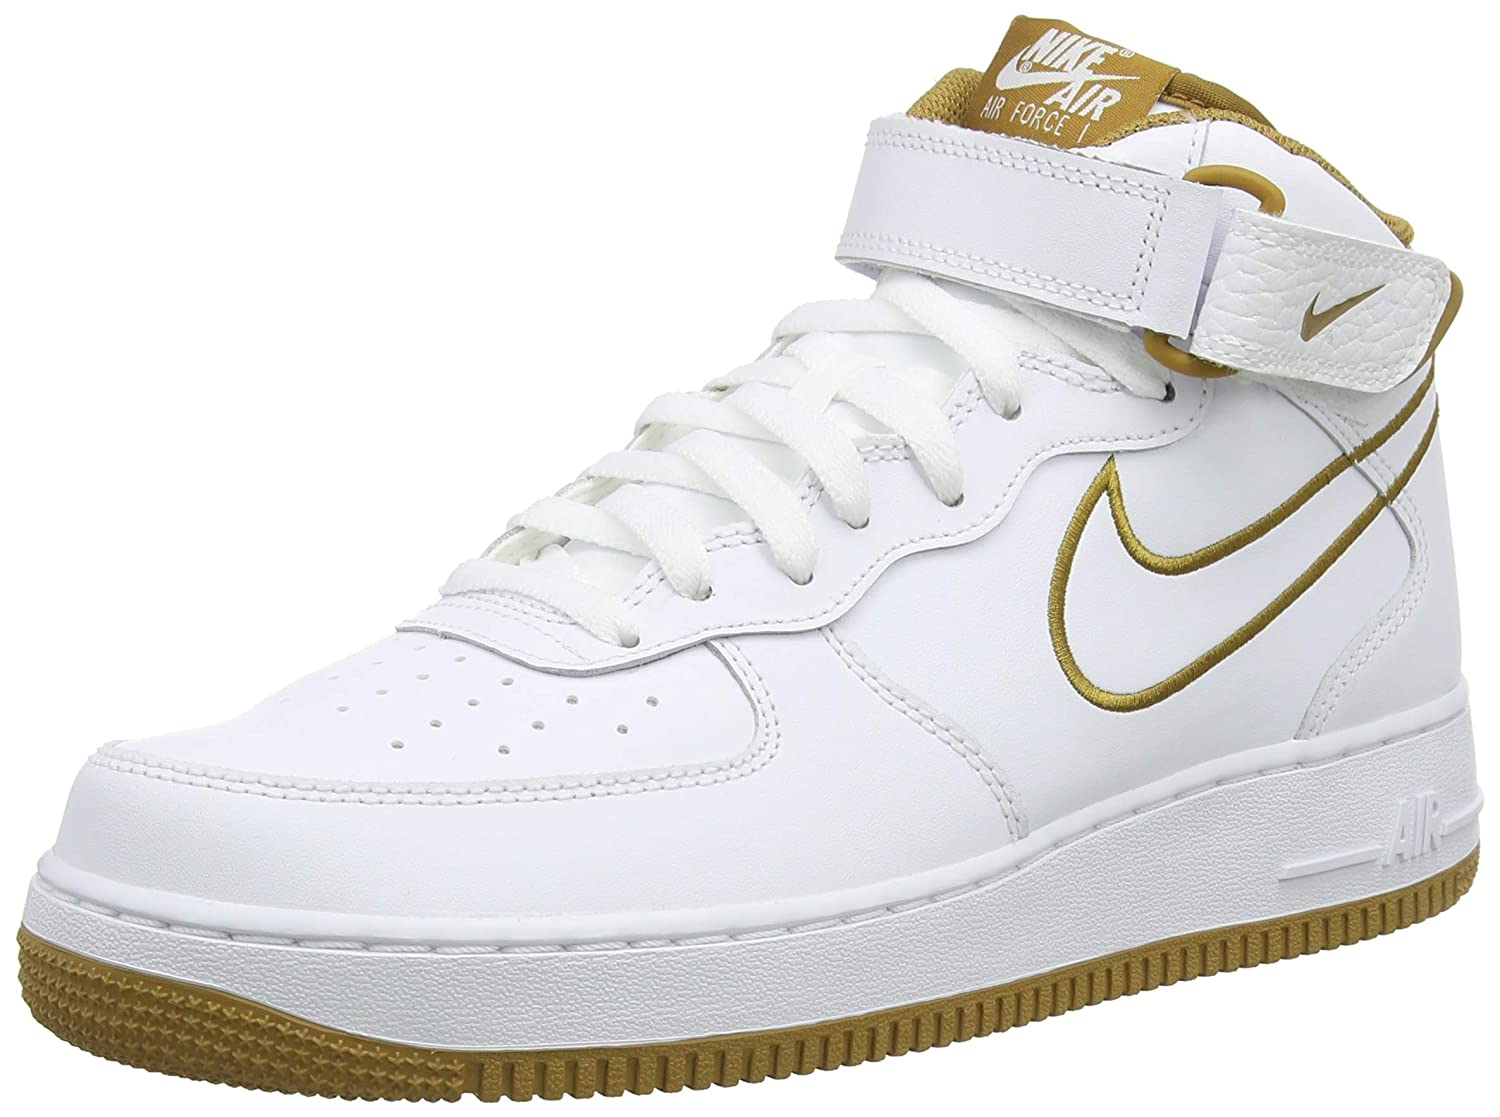 Nike Air Force 1 Mid '07 Leather Men's Shoes WhiteMuted Bronze aq8650 101